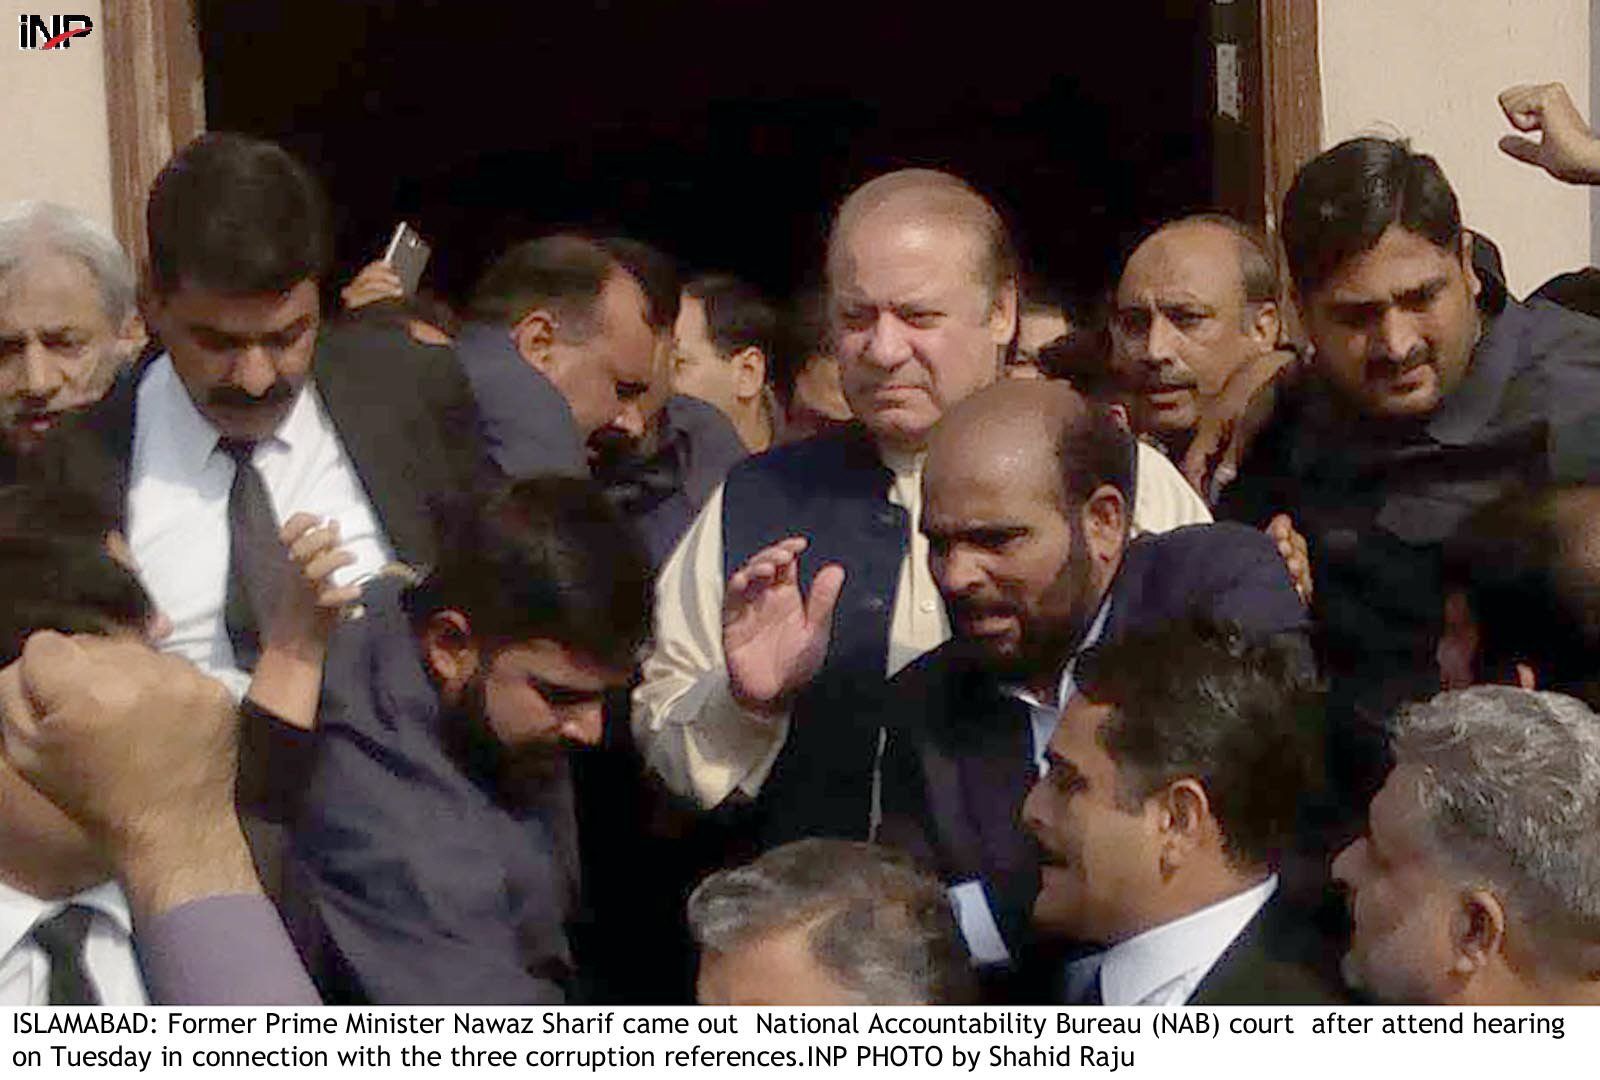 Clubbing corruption references: Nawaz challenges NAB court's verdict in IHC